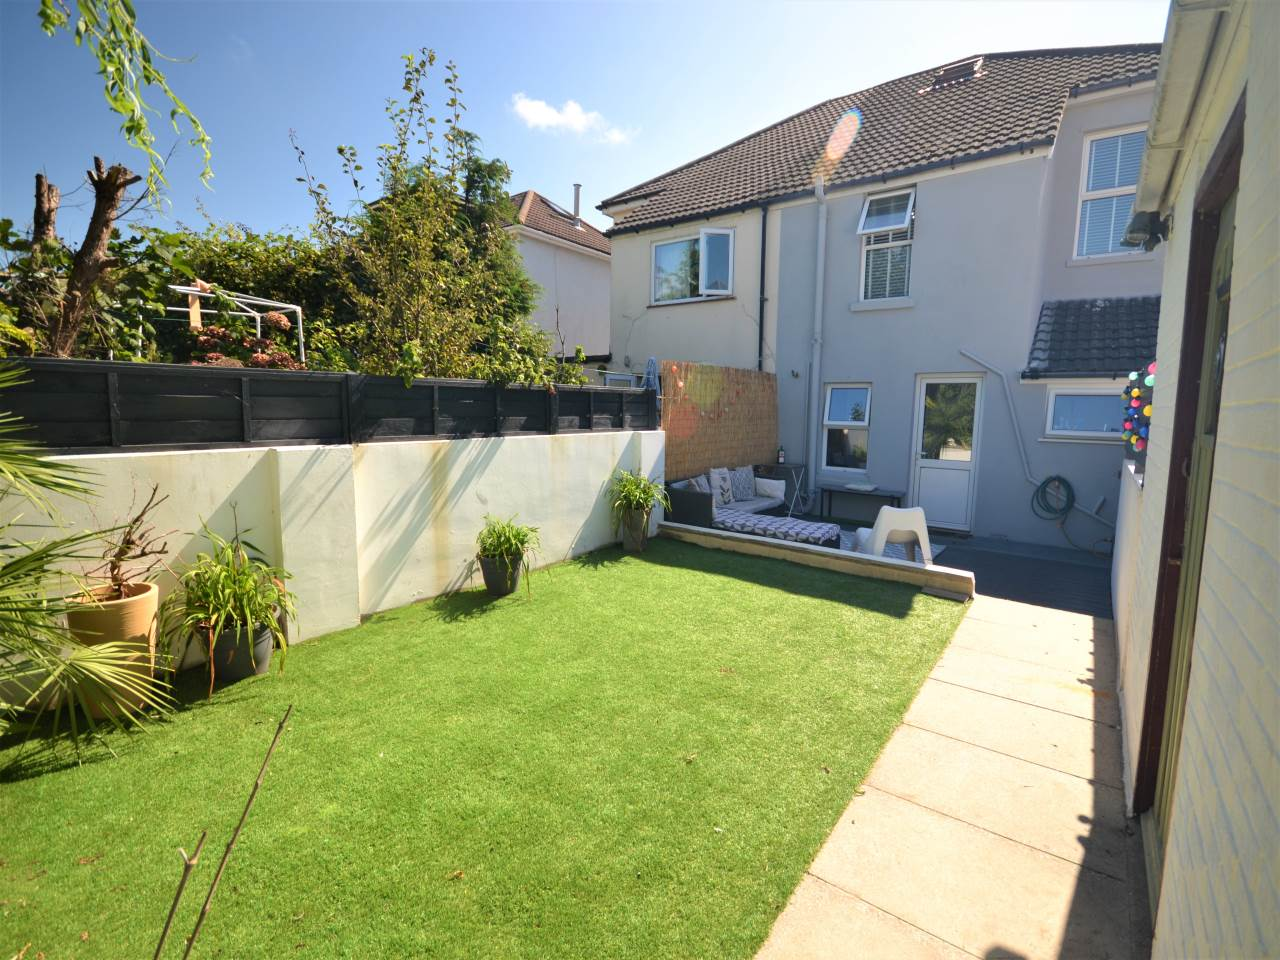 3 bed house for sale in Henville Road, Charminster  - Property Image 14